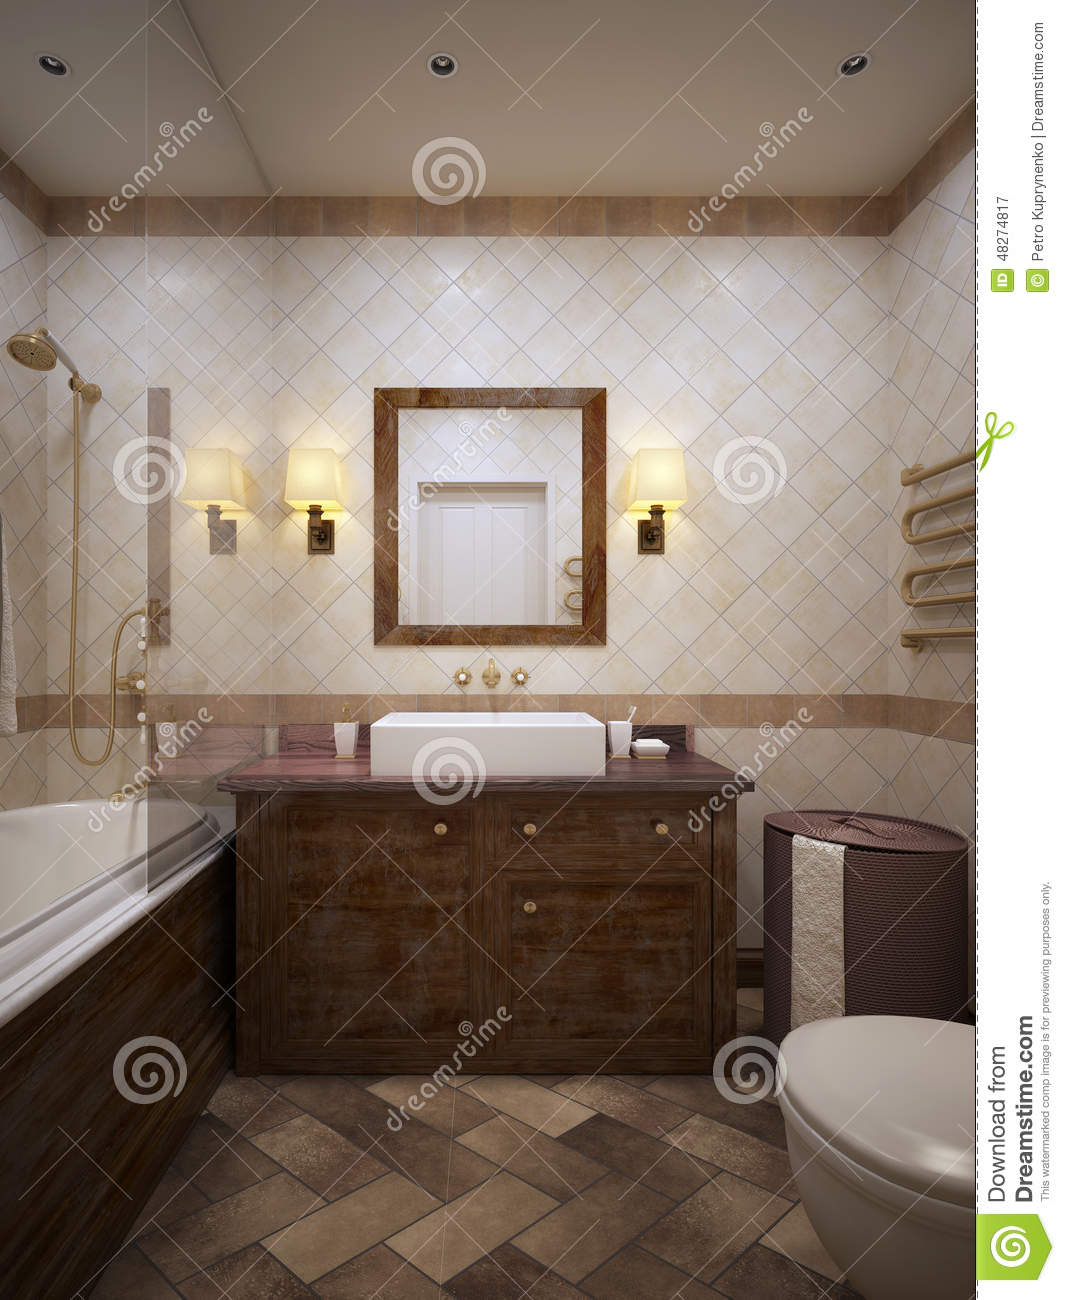 Bathroom in provence style stock illustration image of for Bathrooms in style